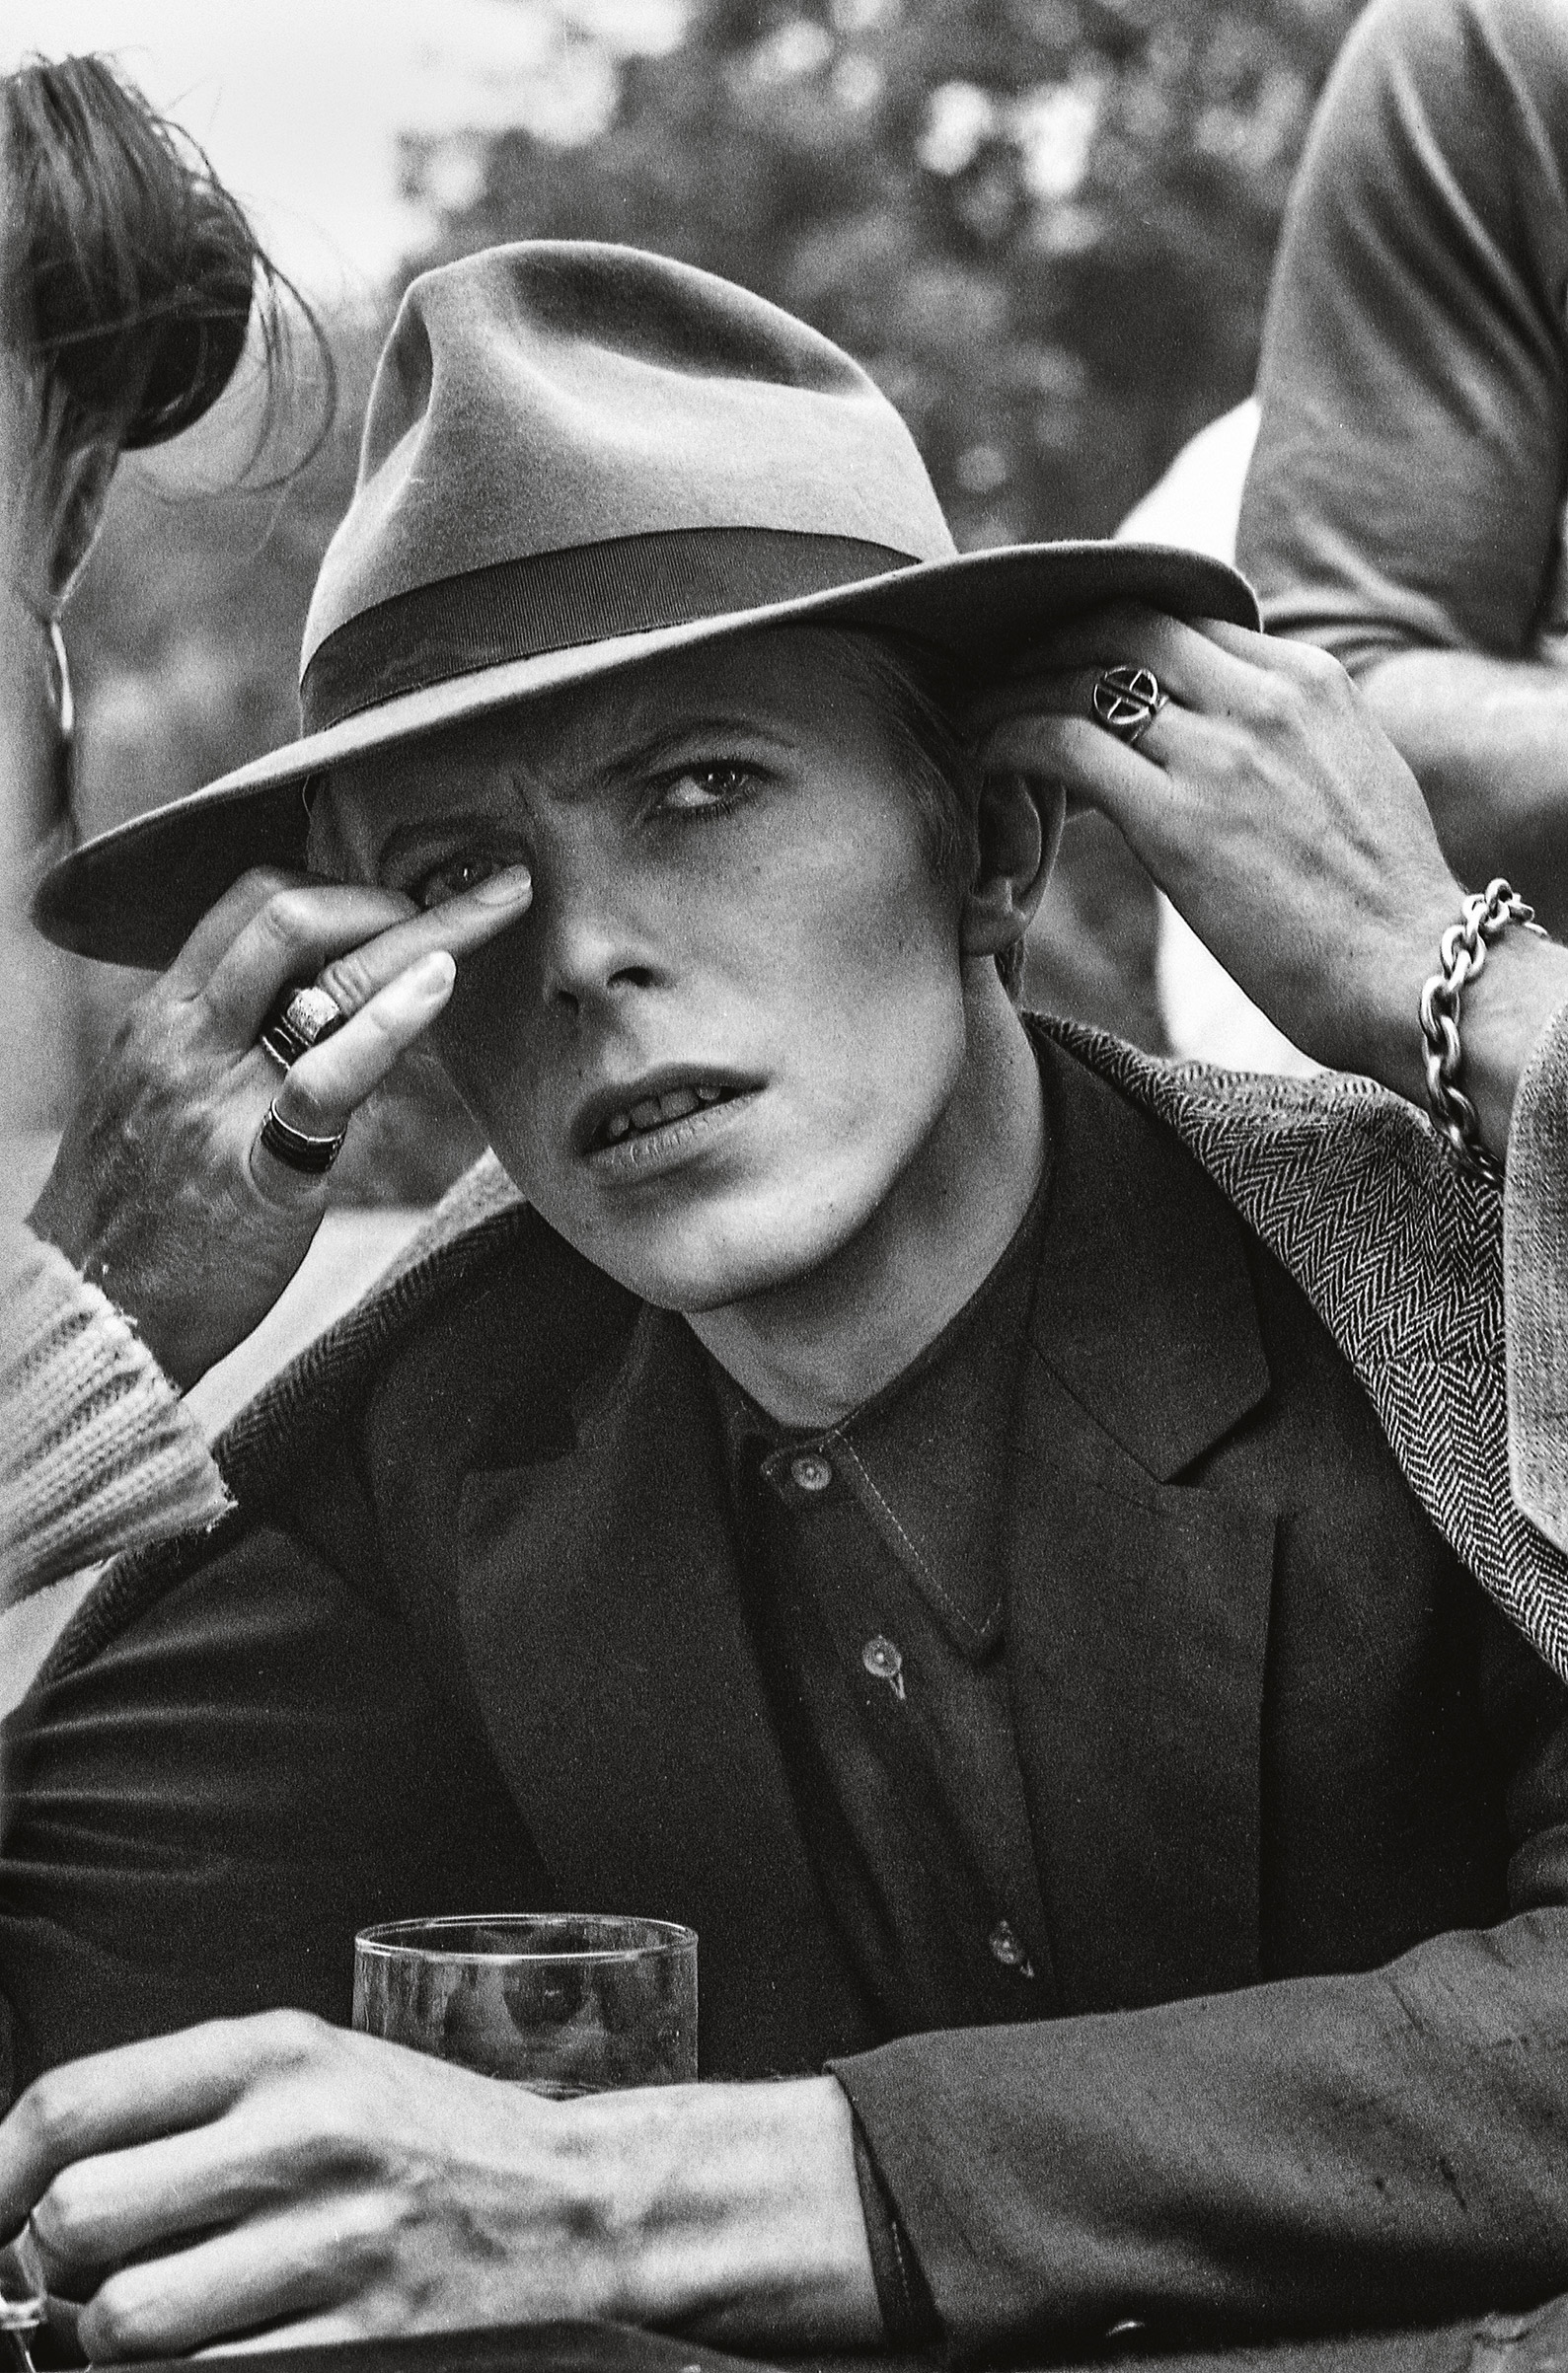 Behind the scenes of the 1976 Nic Roeg film 'The Man Who Fell To Earth' starring David Bowie.